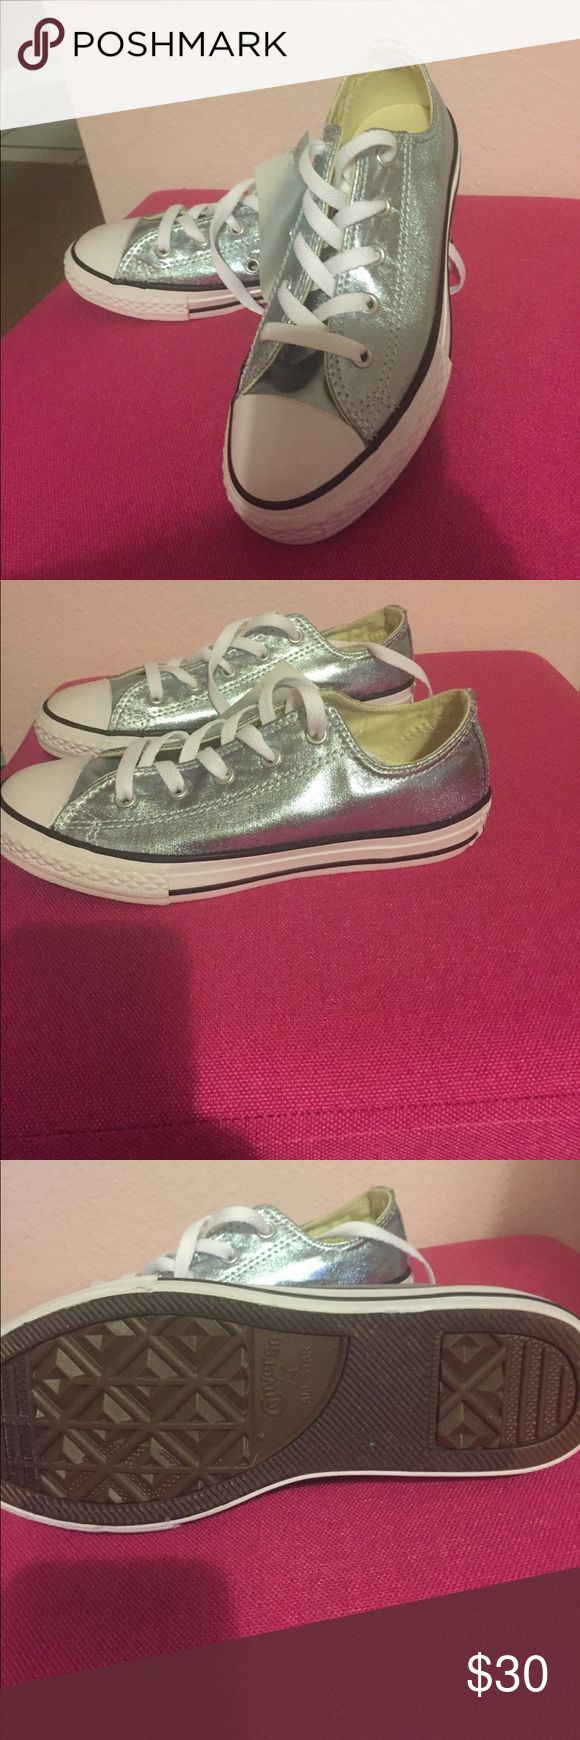 New converse shoes Brand new converse in a silvery blue color. Youth size 2. Perfect condition. Grab them for back to school! Converse Shoes Sneakers